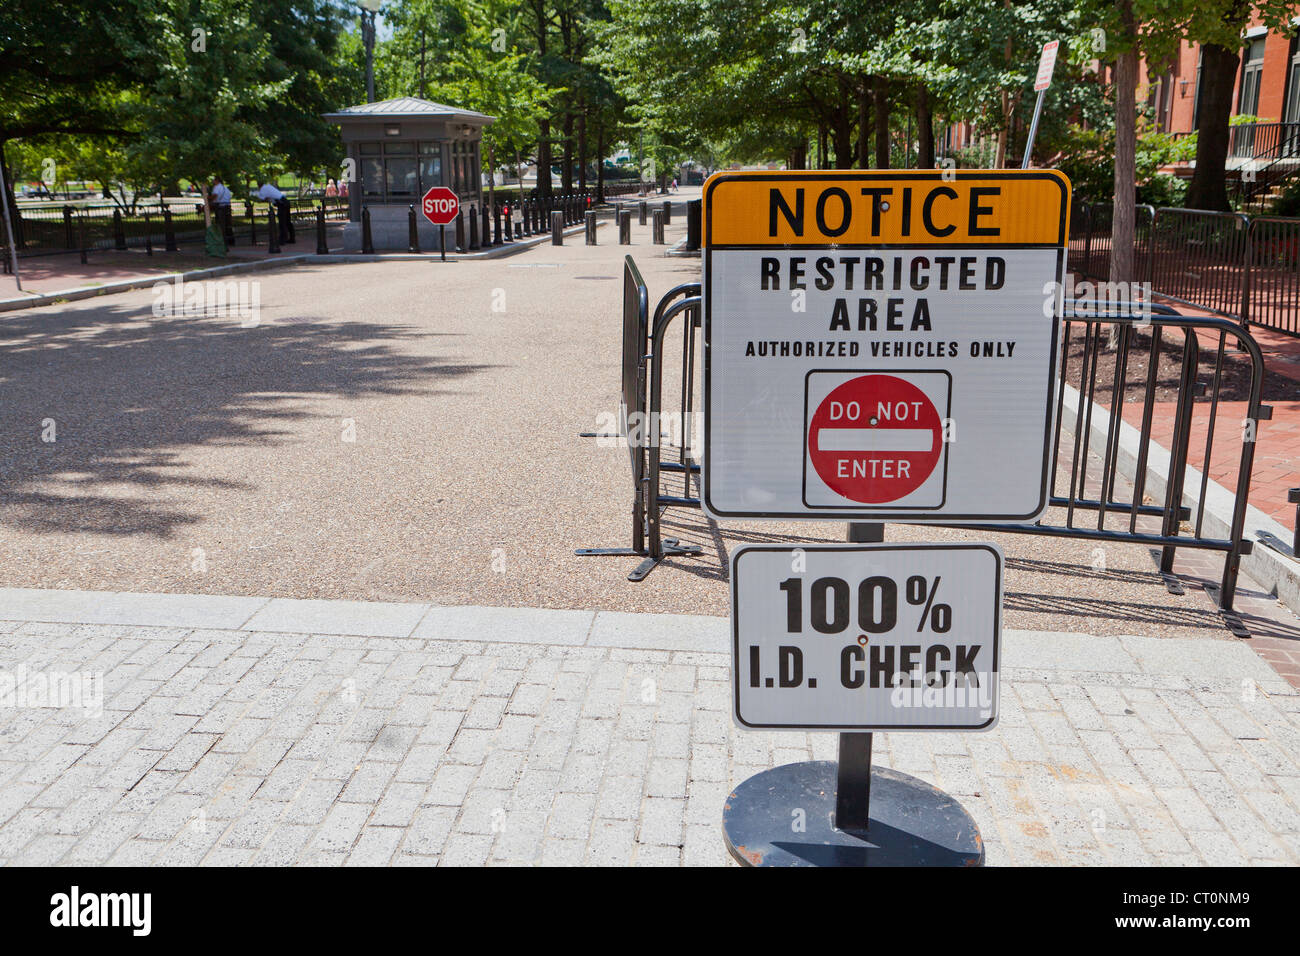 Restricted area warning sign - Stock Image